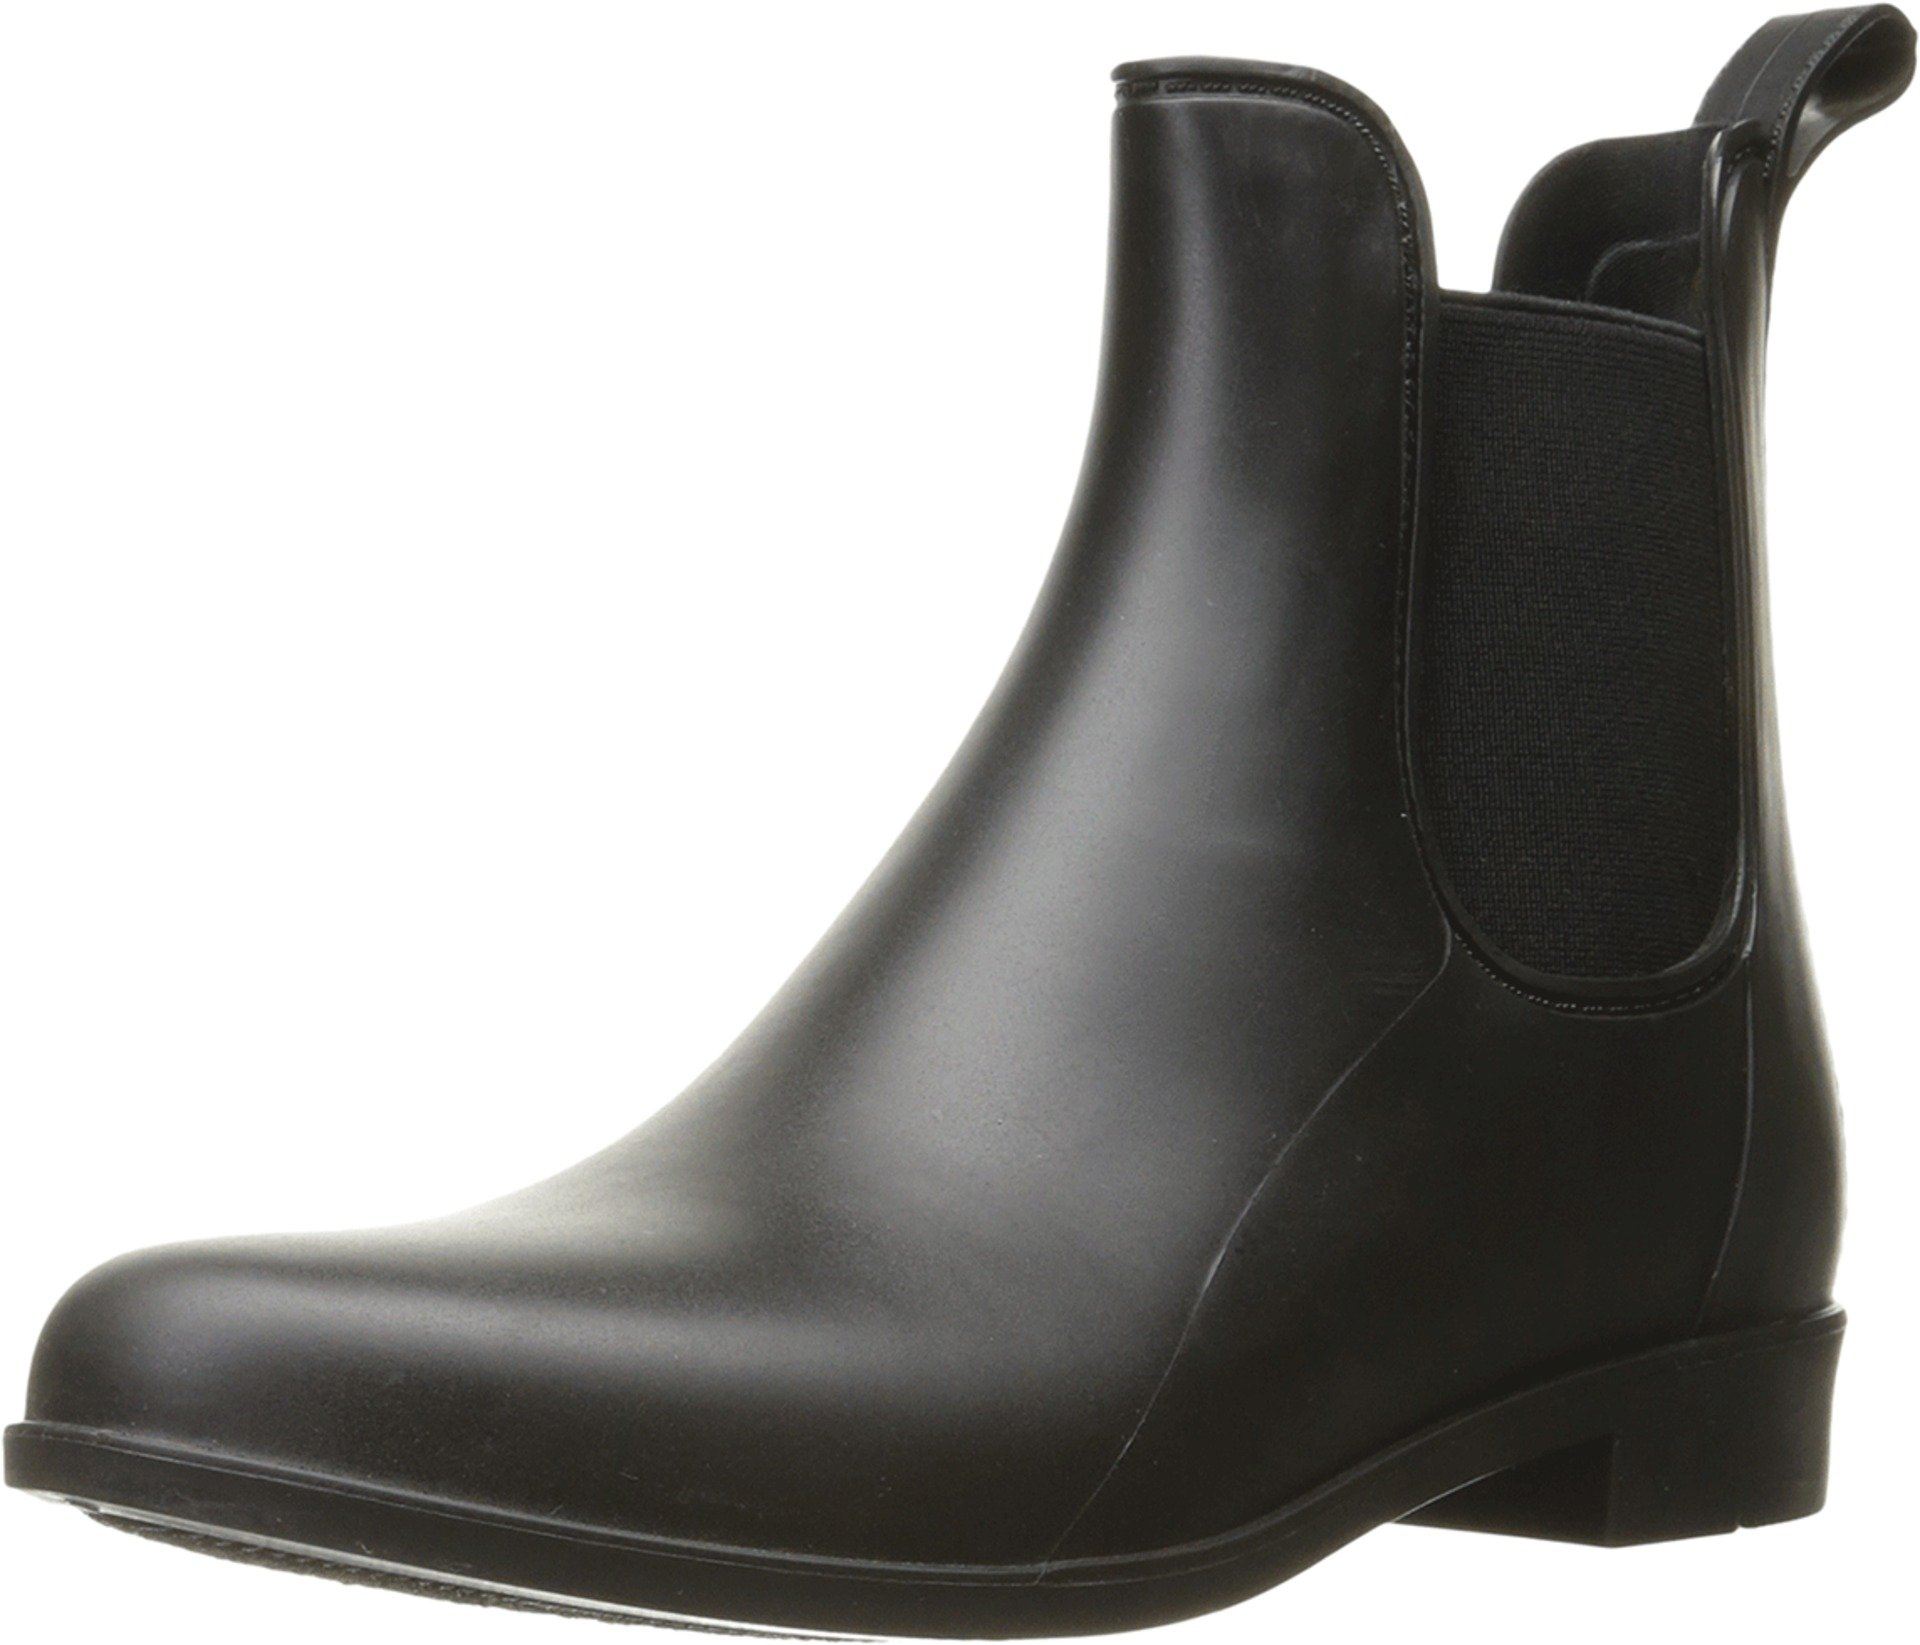 Sam Edelman Women's Tinsley Rain Boot, Black Matte, 9 M US